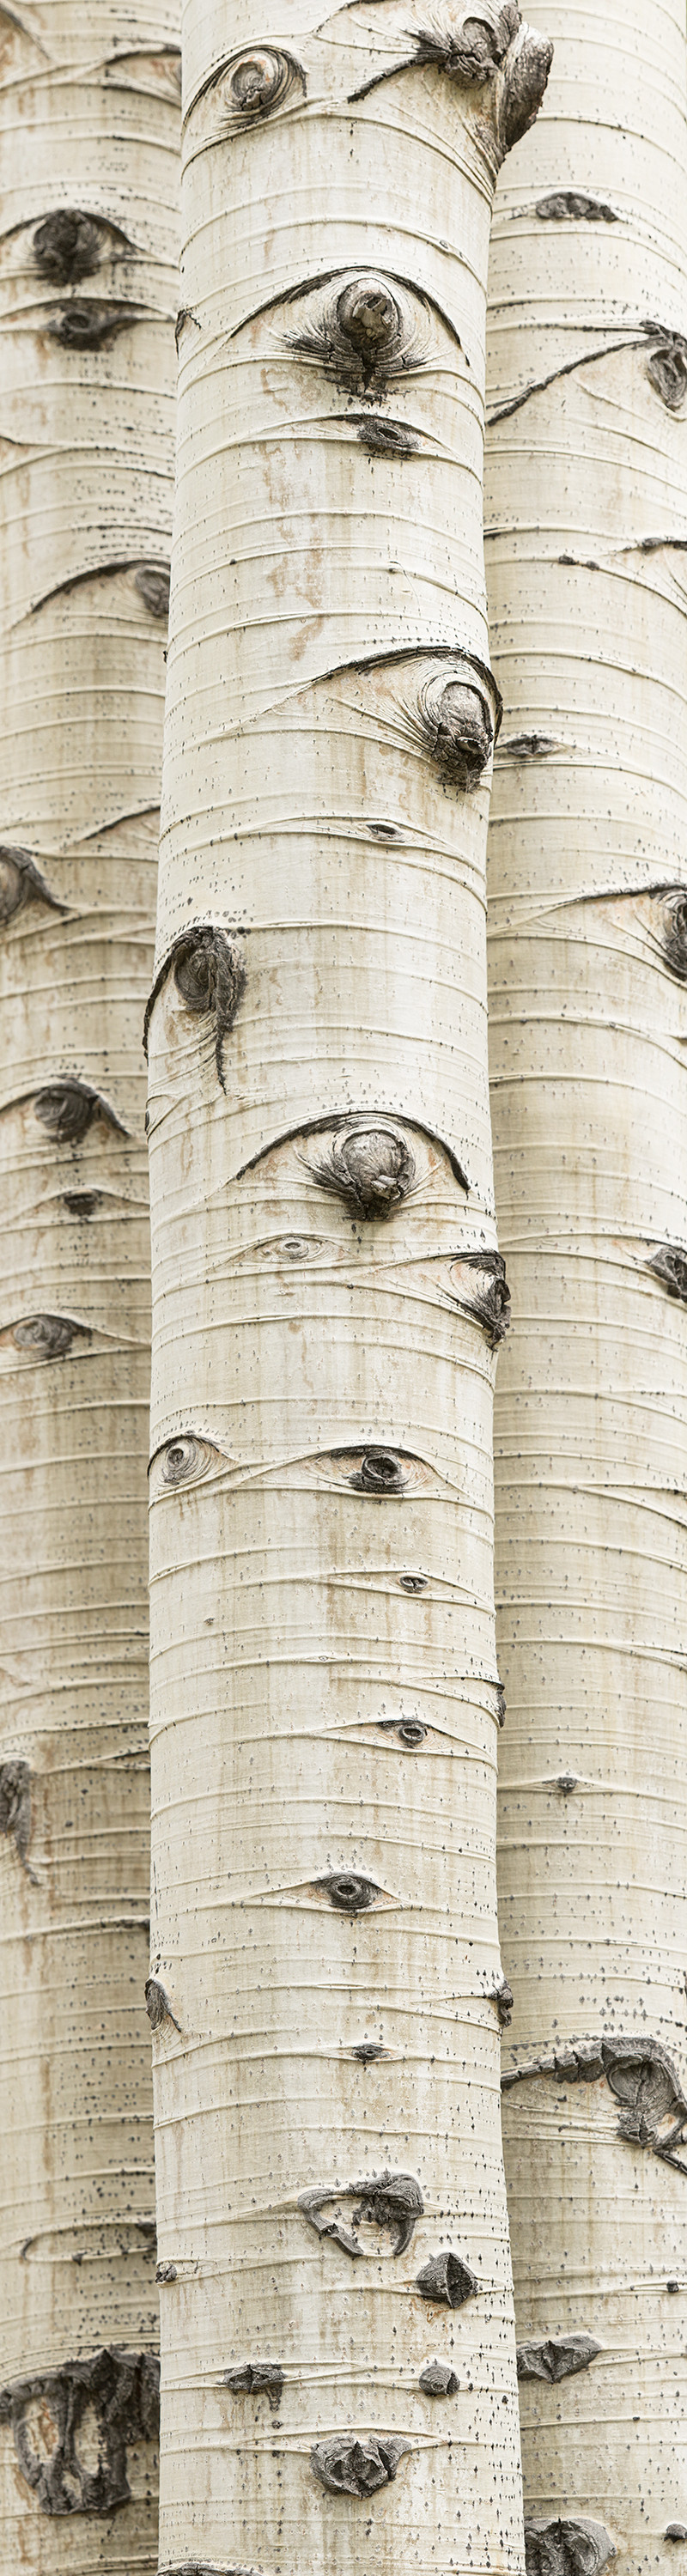 Three aspen trunks tightly positioned in this long vertical composition.